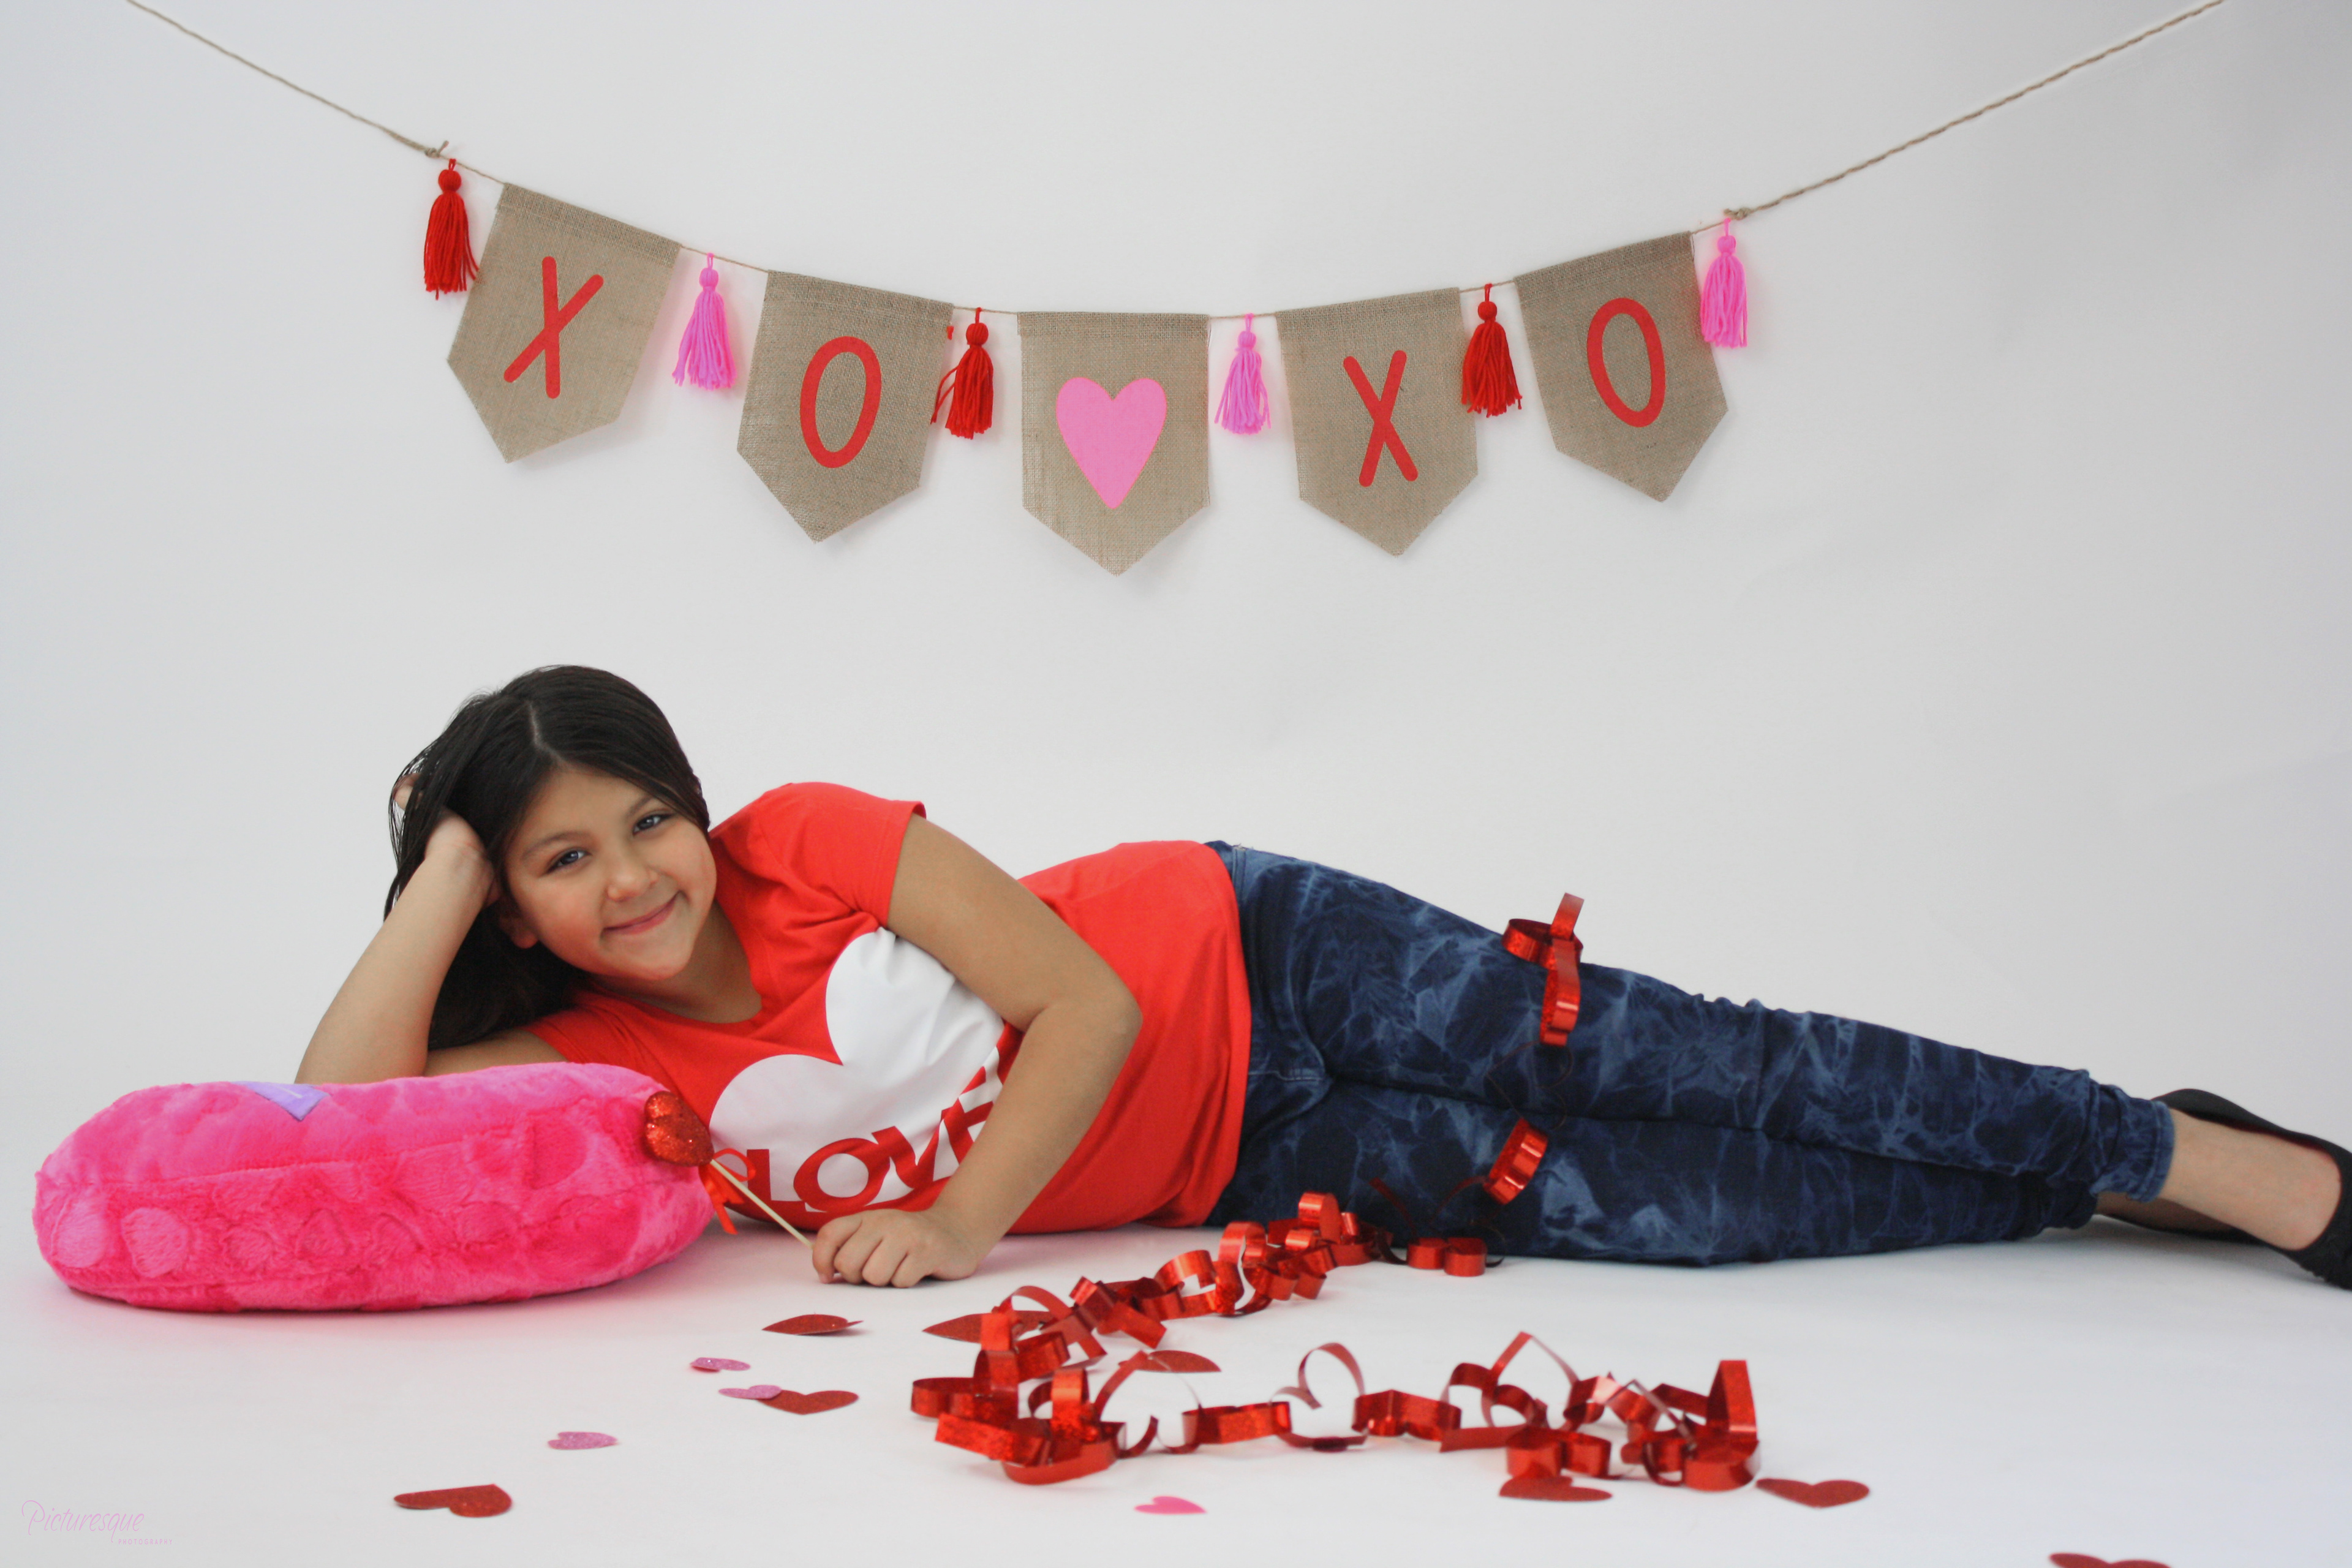 Picturesque Photography Aguilar Valentine S Day Photoshoot 2018